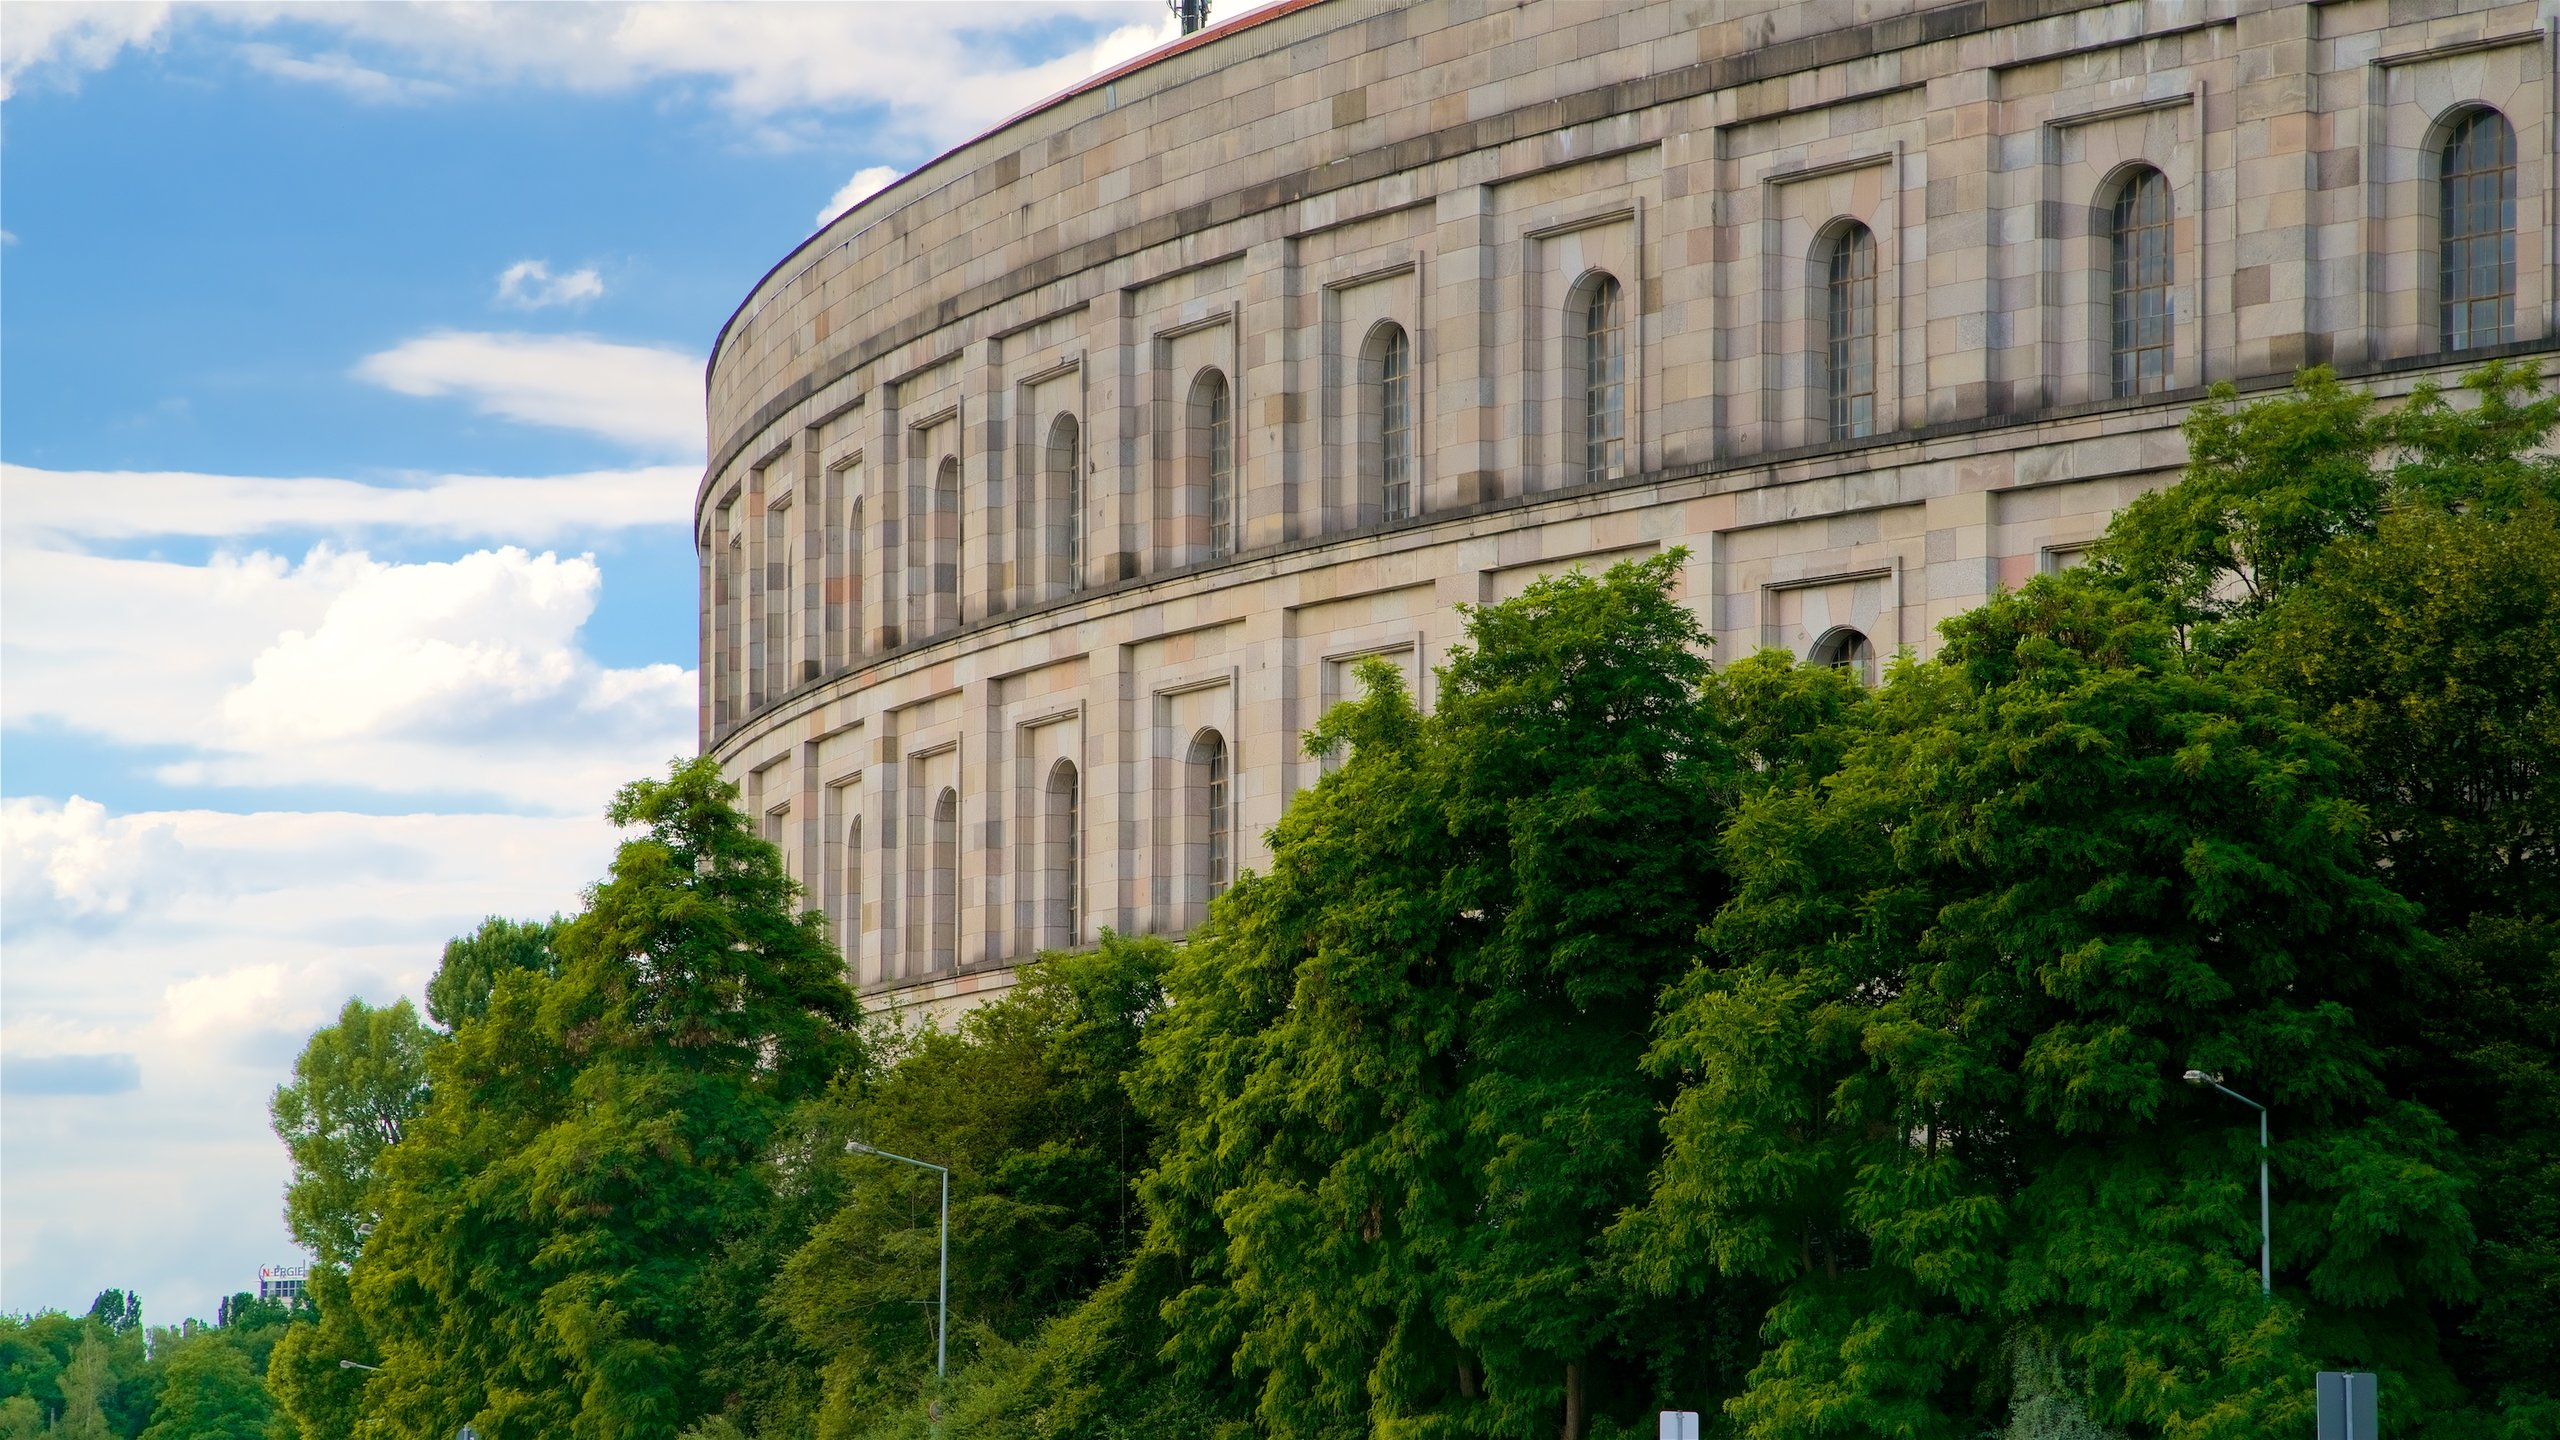 Explore the enormous former Party Rally Grounds of the Nazi Party and learn about significant historical moments and propaganda events that occurred here.